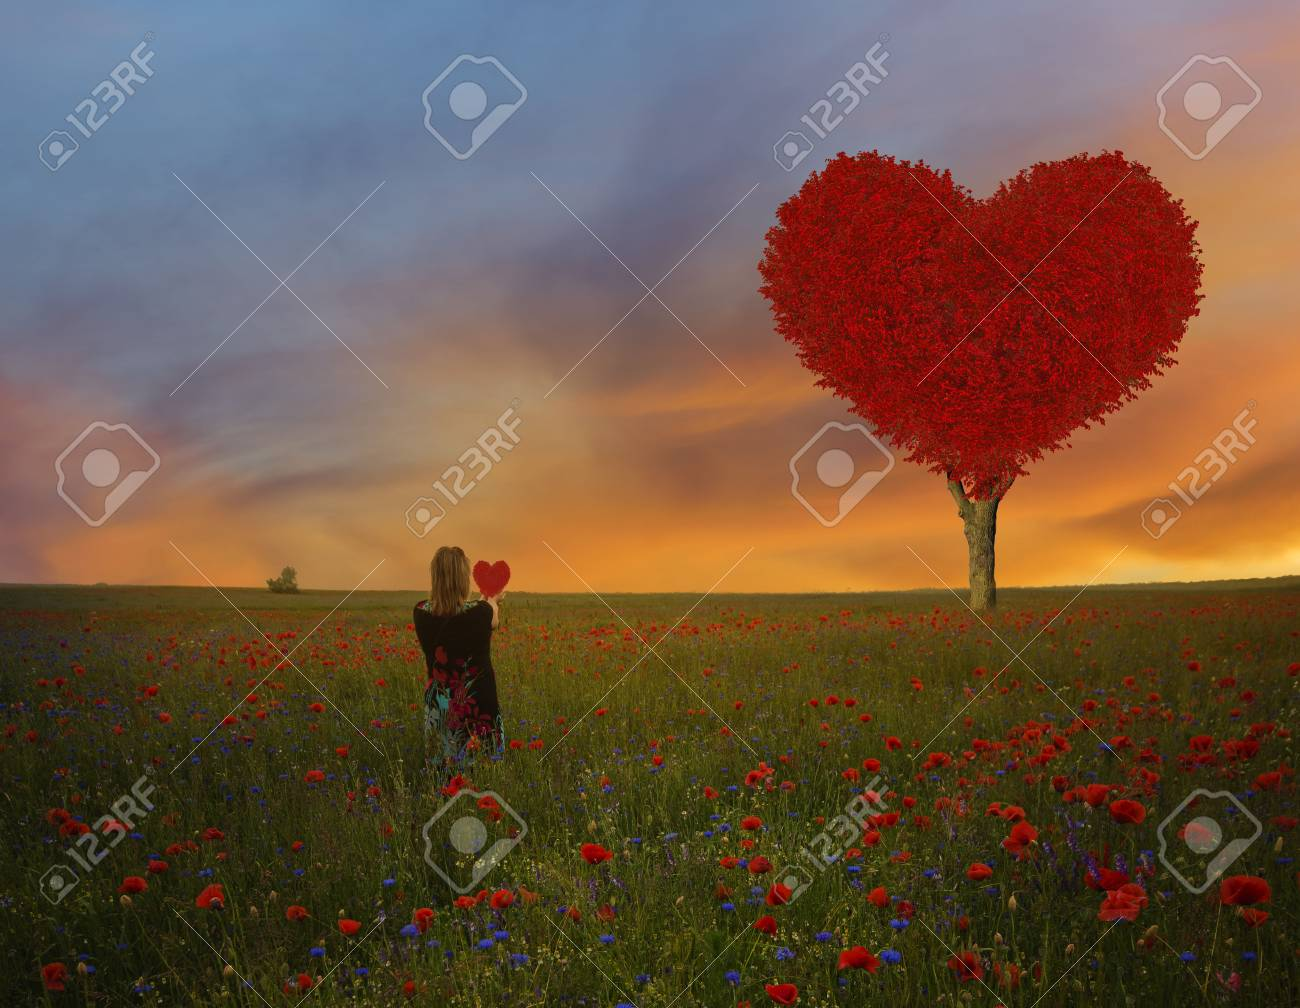 Love Tree Heart Beautiful Shape Valentine Valentine S Day Stock Photo Picture And Royalty Free Image Image 92527129